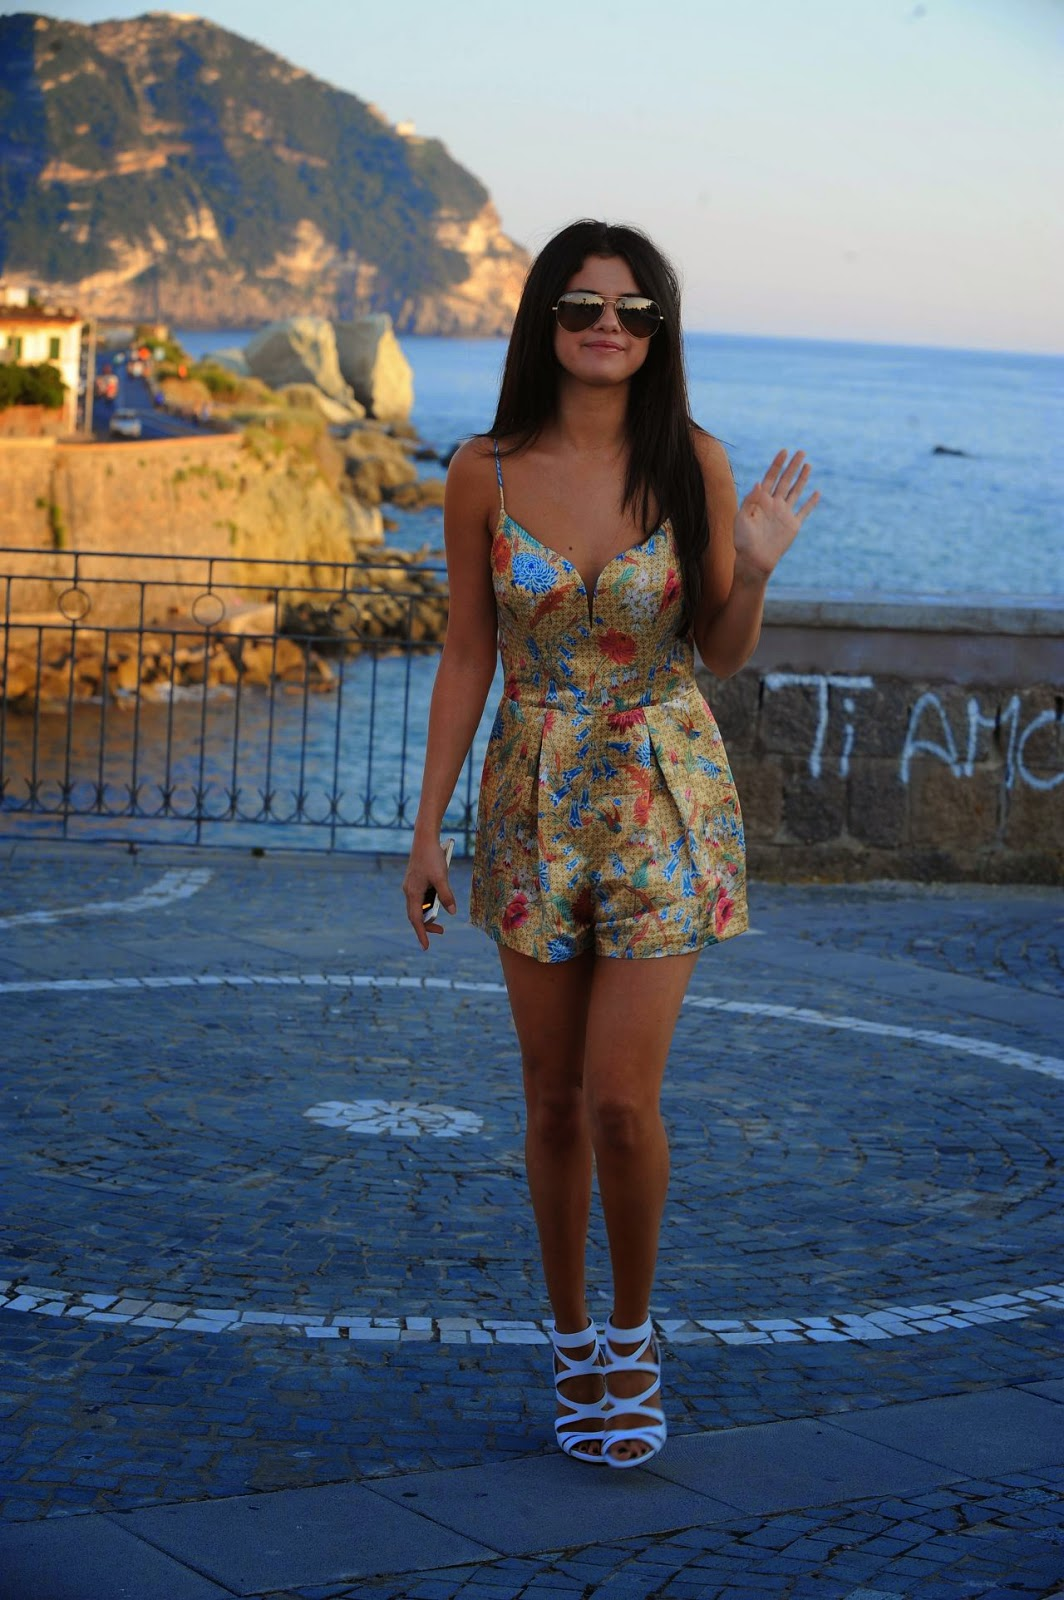 Selena Gomez in a floral mini romper out and about in Ischia